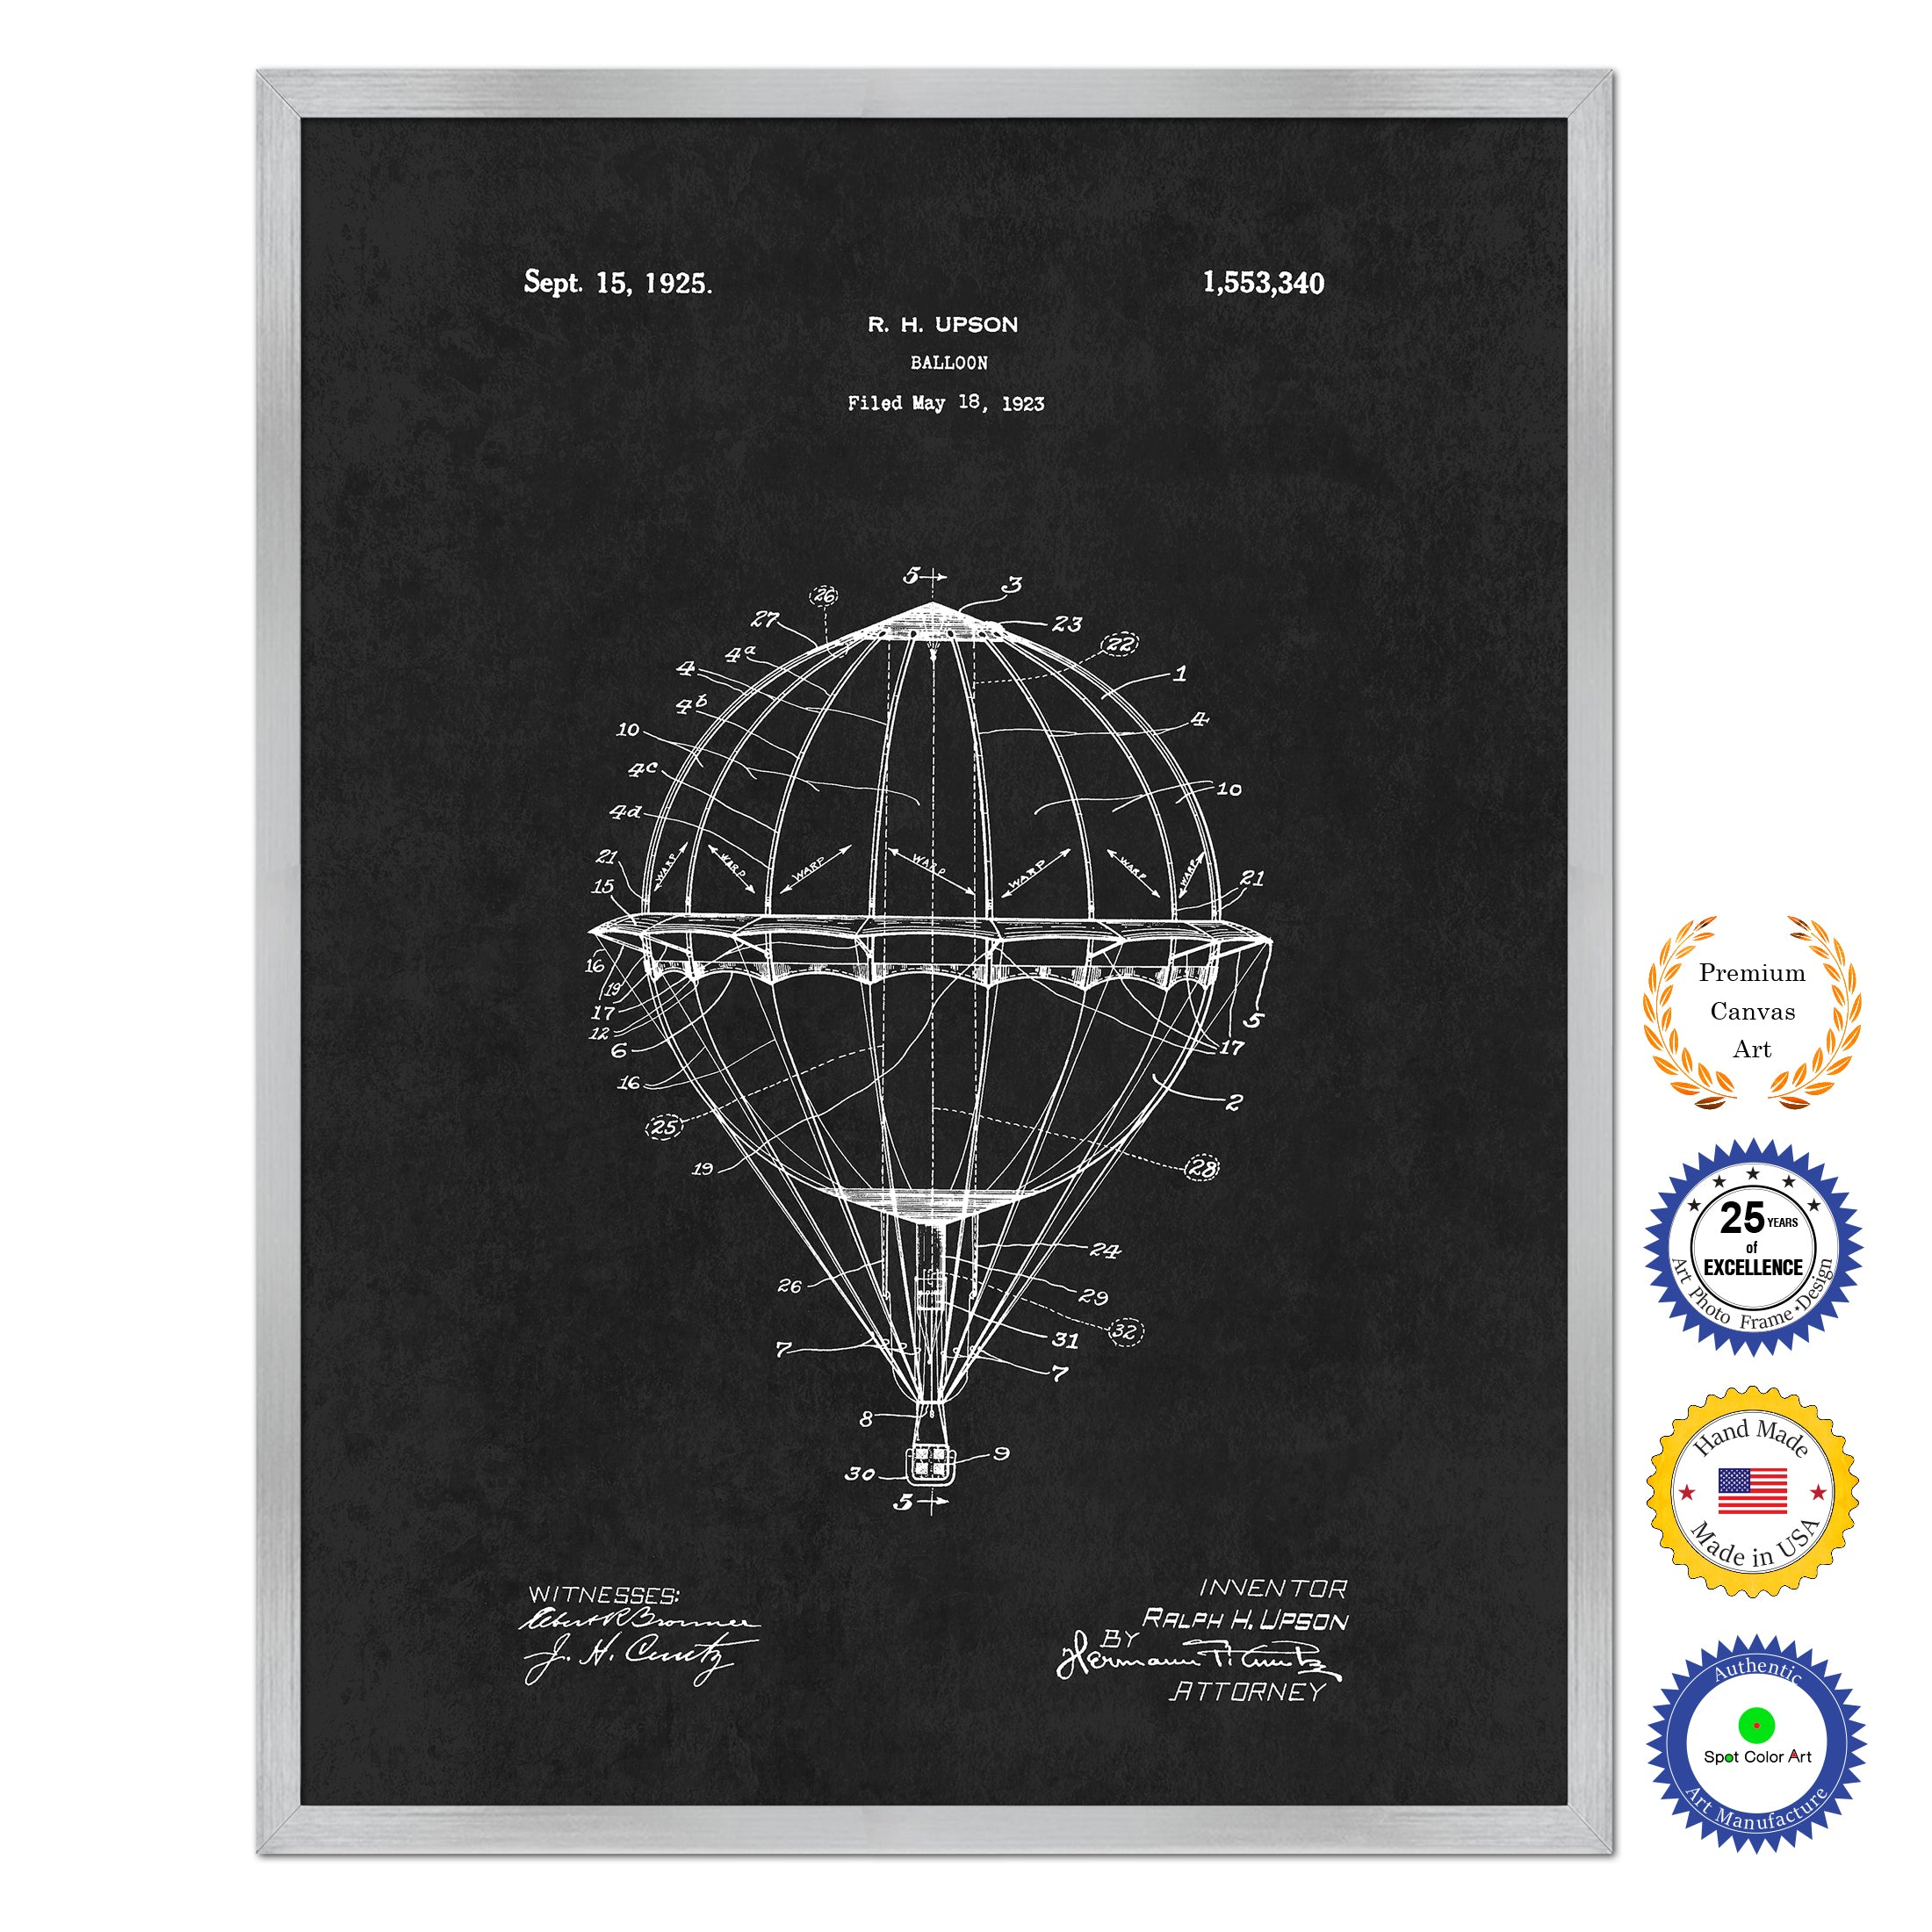 1925 Hot Air Balloon Antique Patent Artwork Silver Framed Canvas Home Office Decor Great Gift for Hot Air Balloon Lover